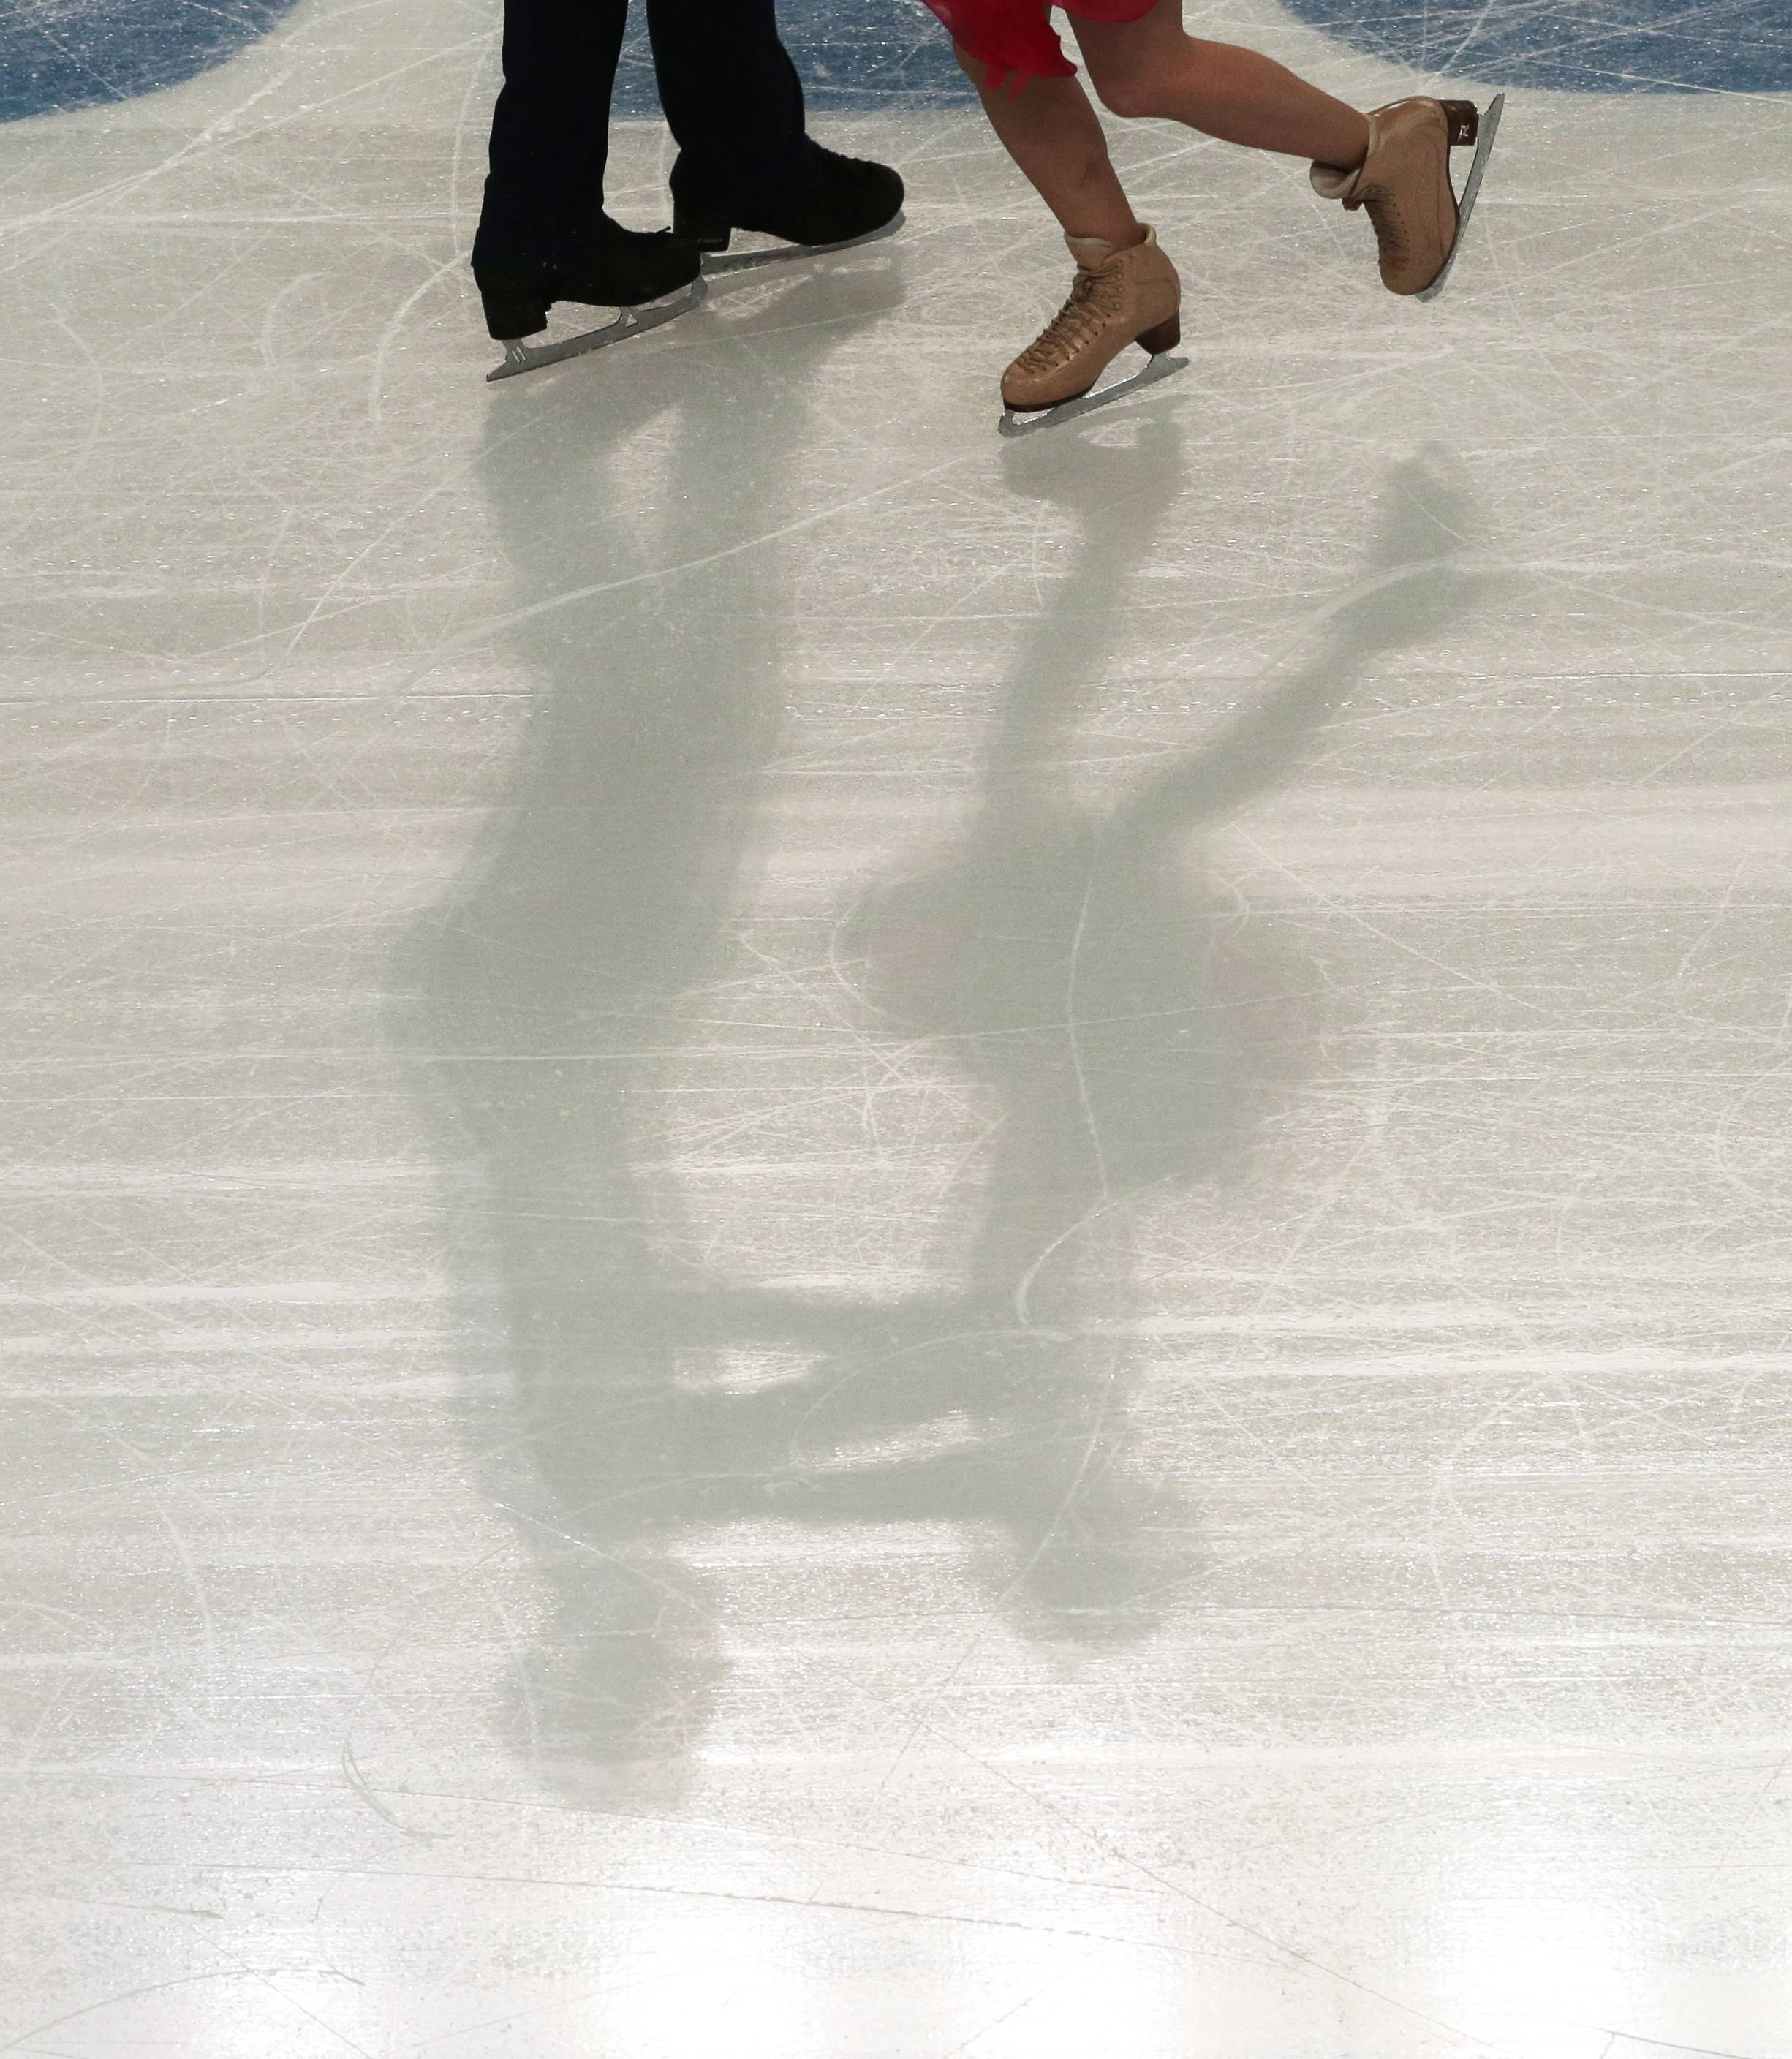 Pernelle Carron and Lloyd Jones of France cast a shadow as they compete in the ice dance short dance figure skating competition at the Iceberg Skating Palace during the 2014 Winter Olympics, Sunday, Feb. 16, 2014, in Sochi, Russia.